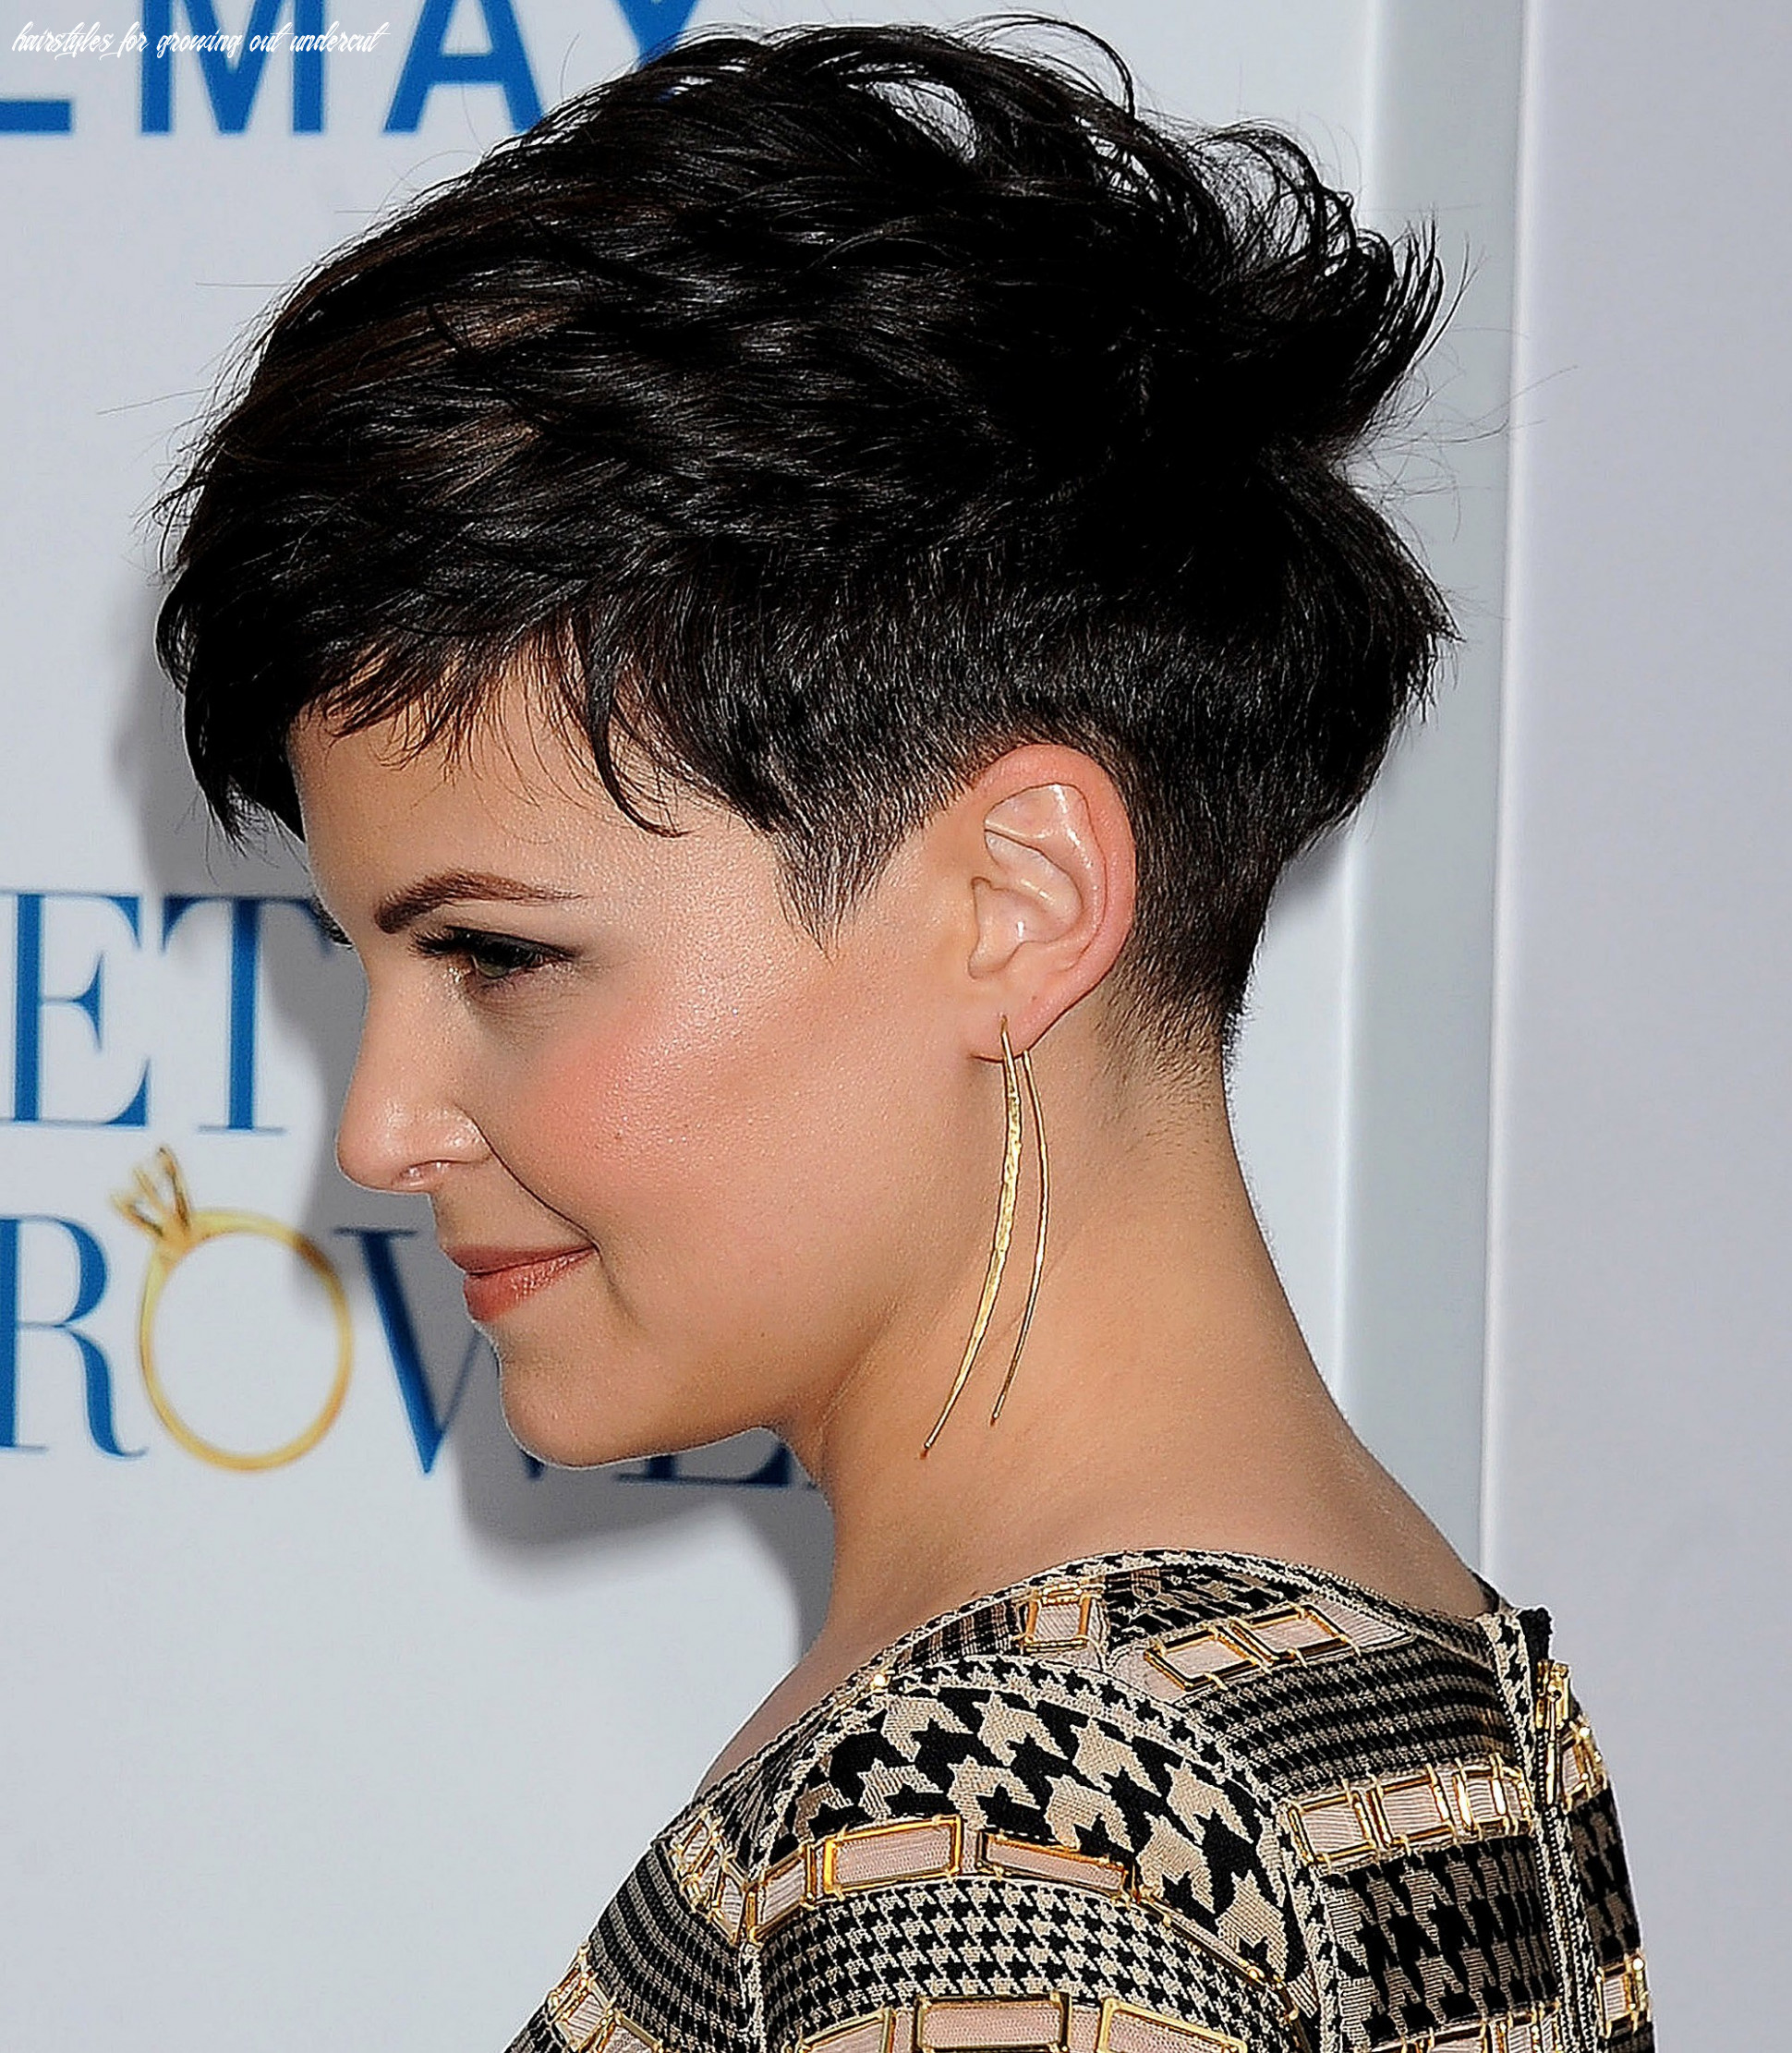 10 handy hair tips for growing out an undercut for women hairstyles for growing out undercut